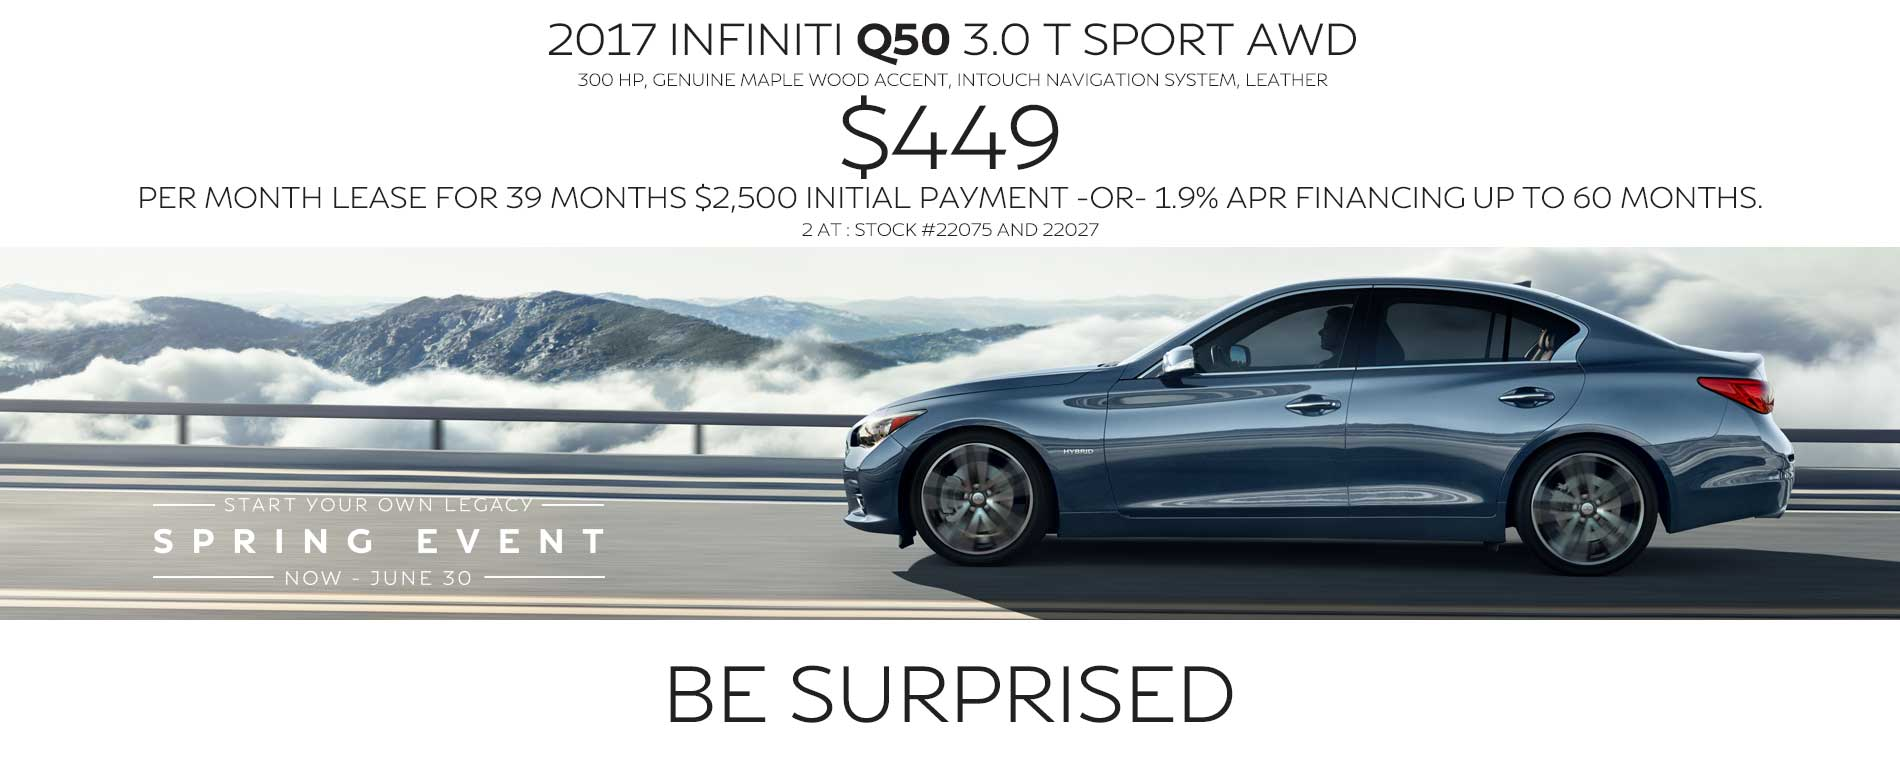 BE surprised. Lease a 2017 INFINITI Q50 for $449 per month with $2,500 due at signing or 1.9% APR financing up to 60 months.